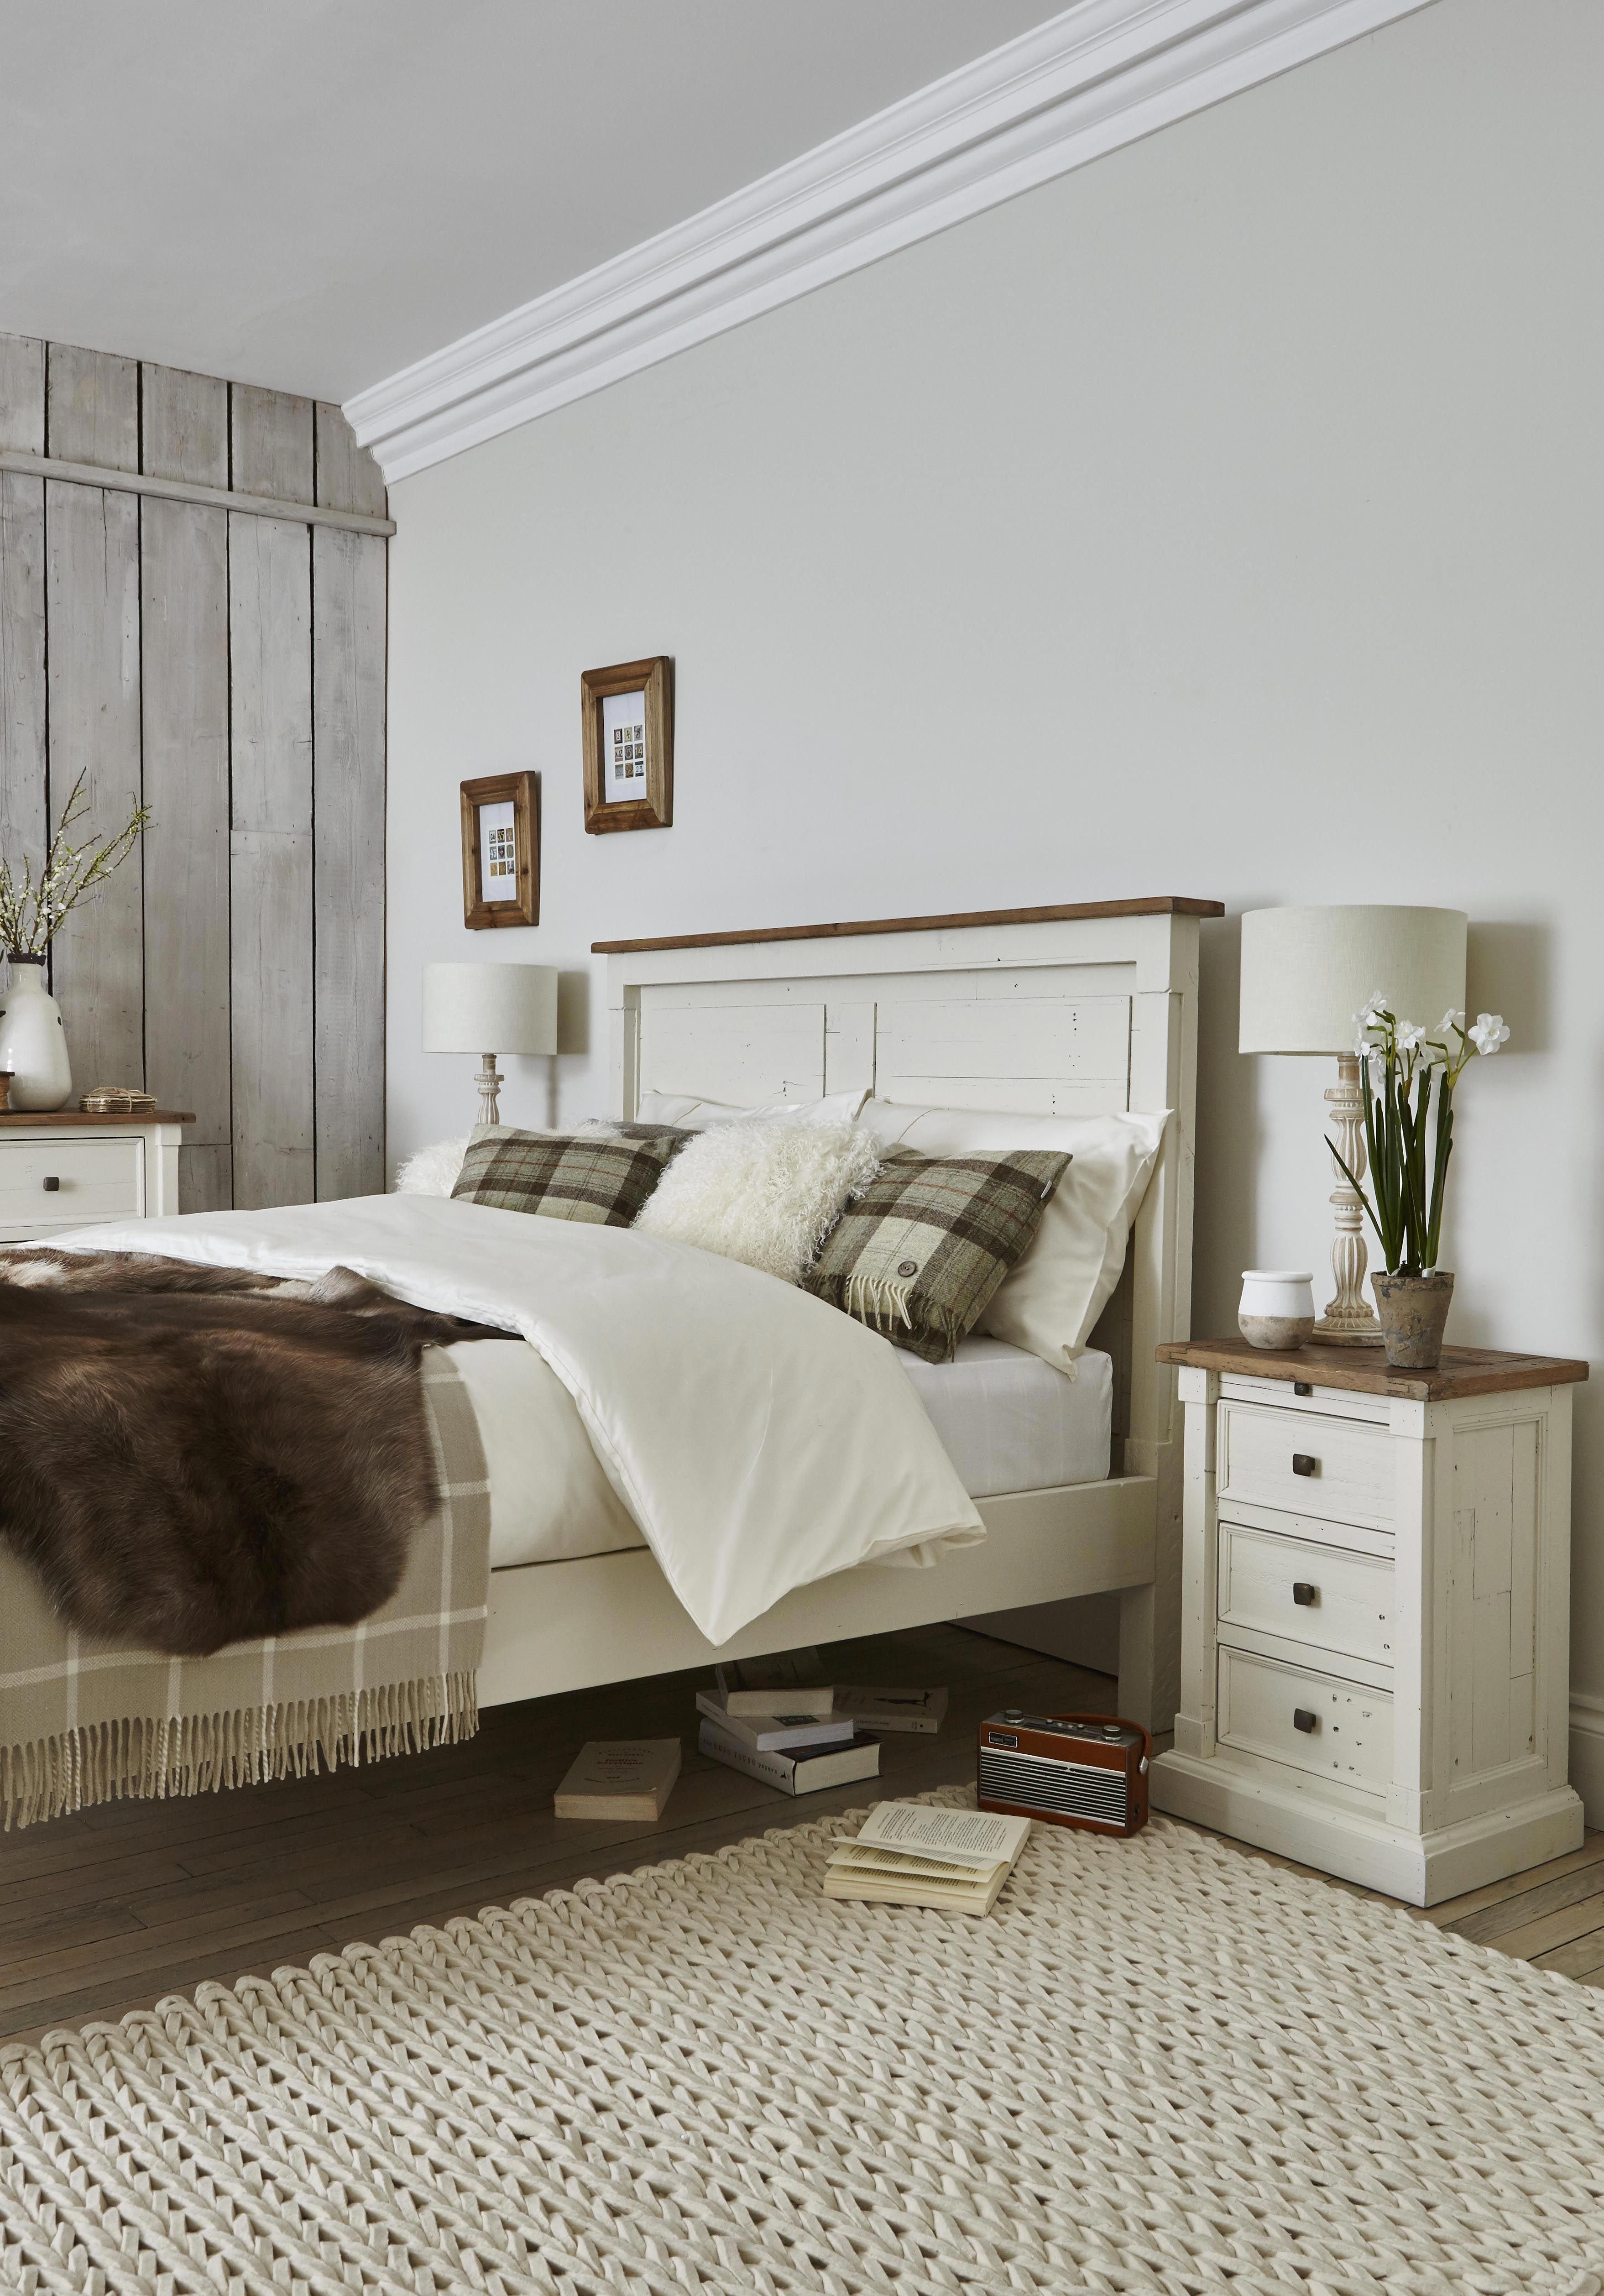 Create A Calm And Relaxing Bedroom Interior With Our Aurora